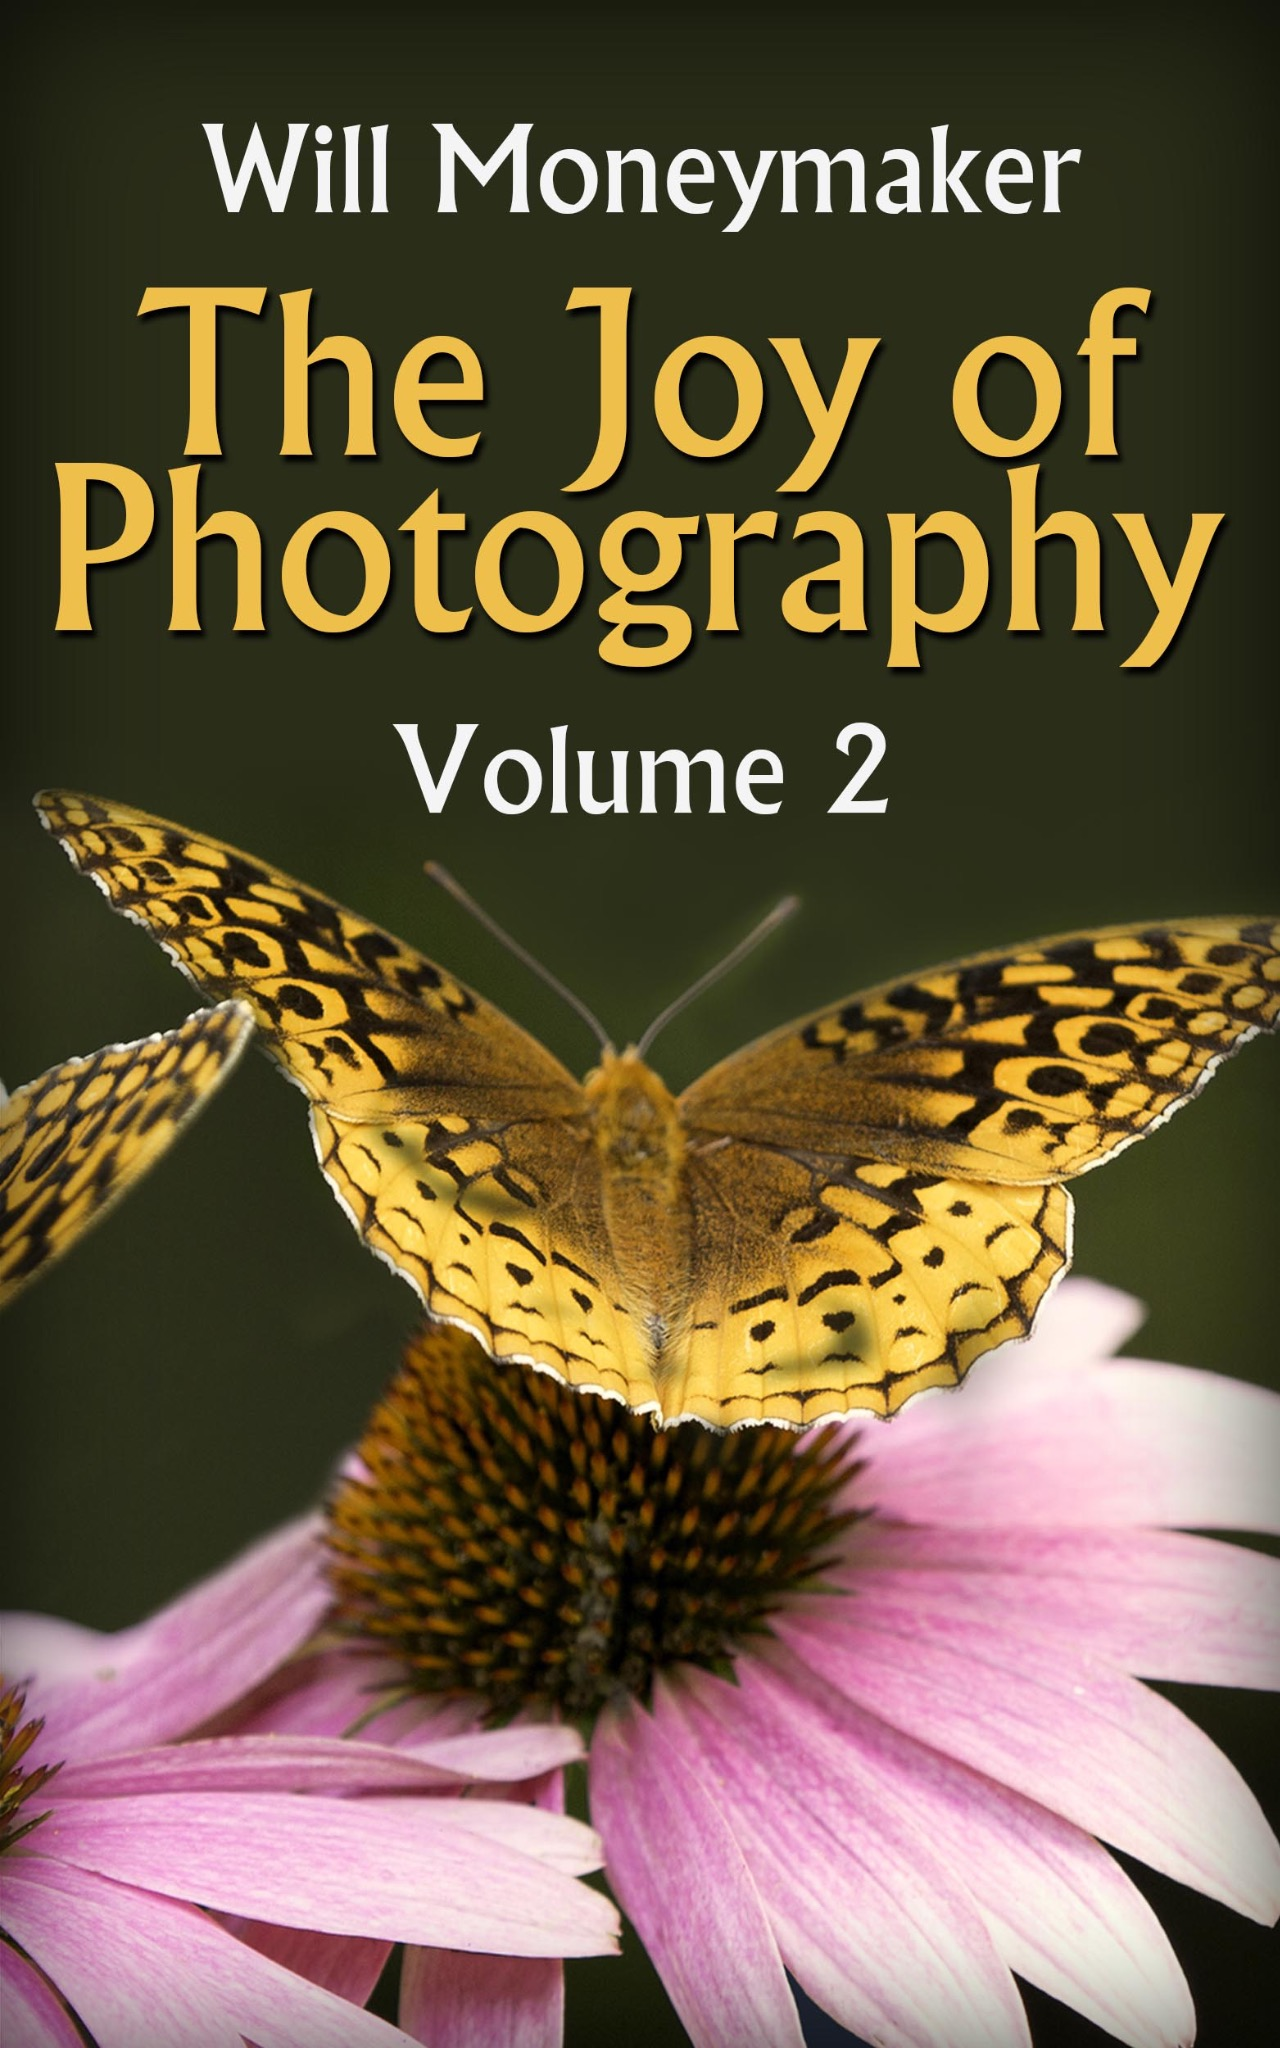 The Joy of Photography #2